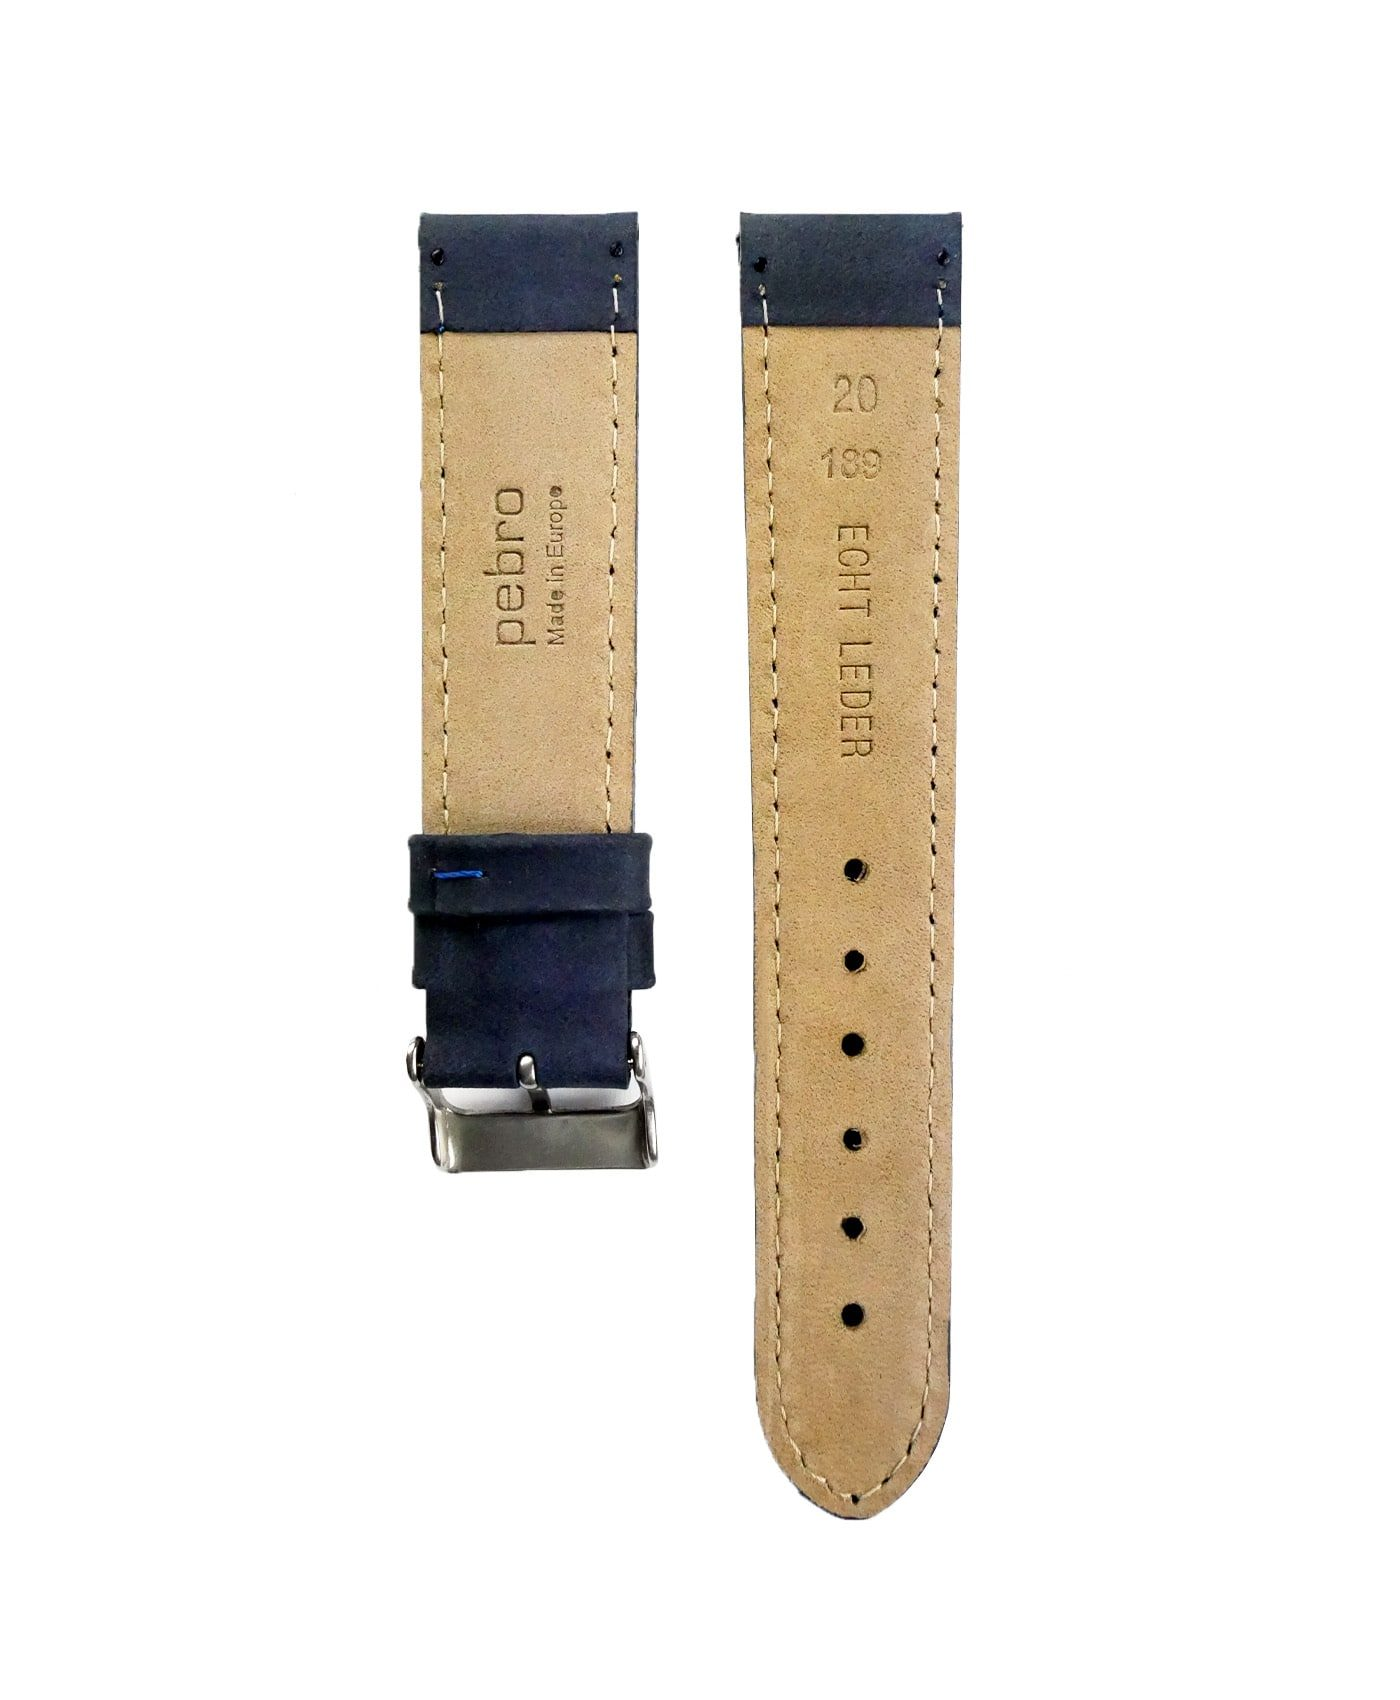 Pebro Premium Calfskin Watch Strap Blue No 189 back